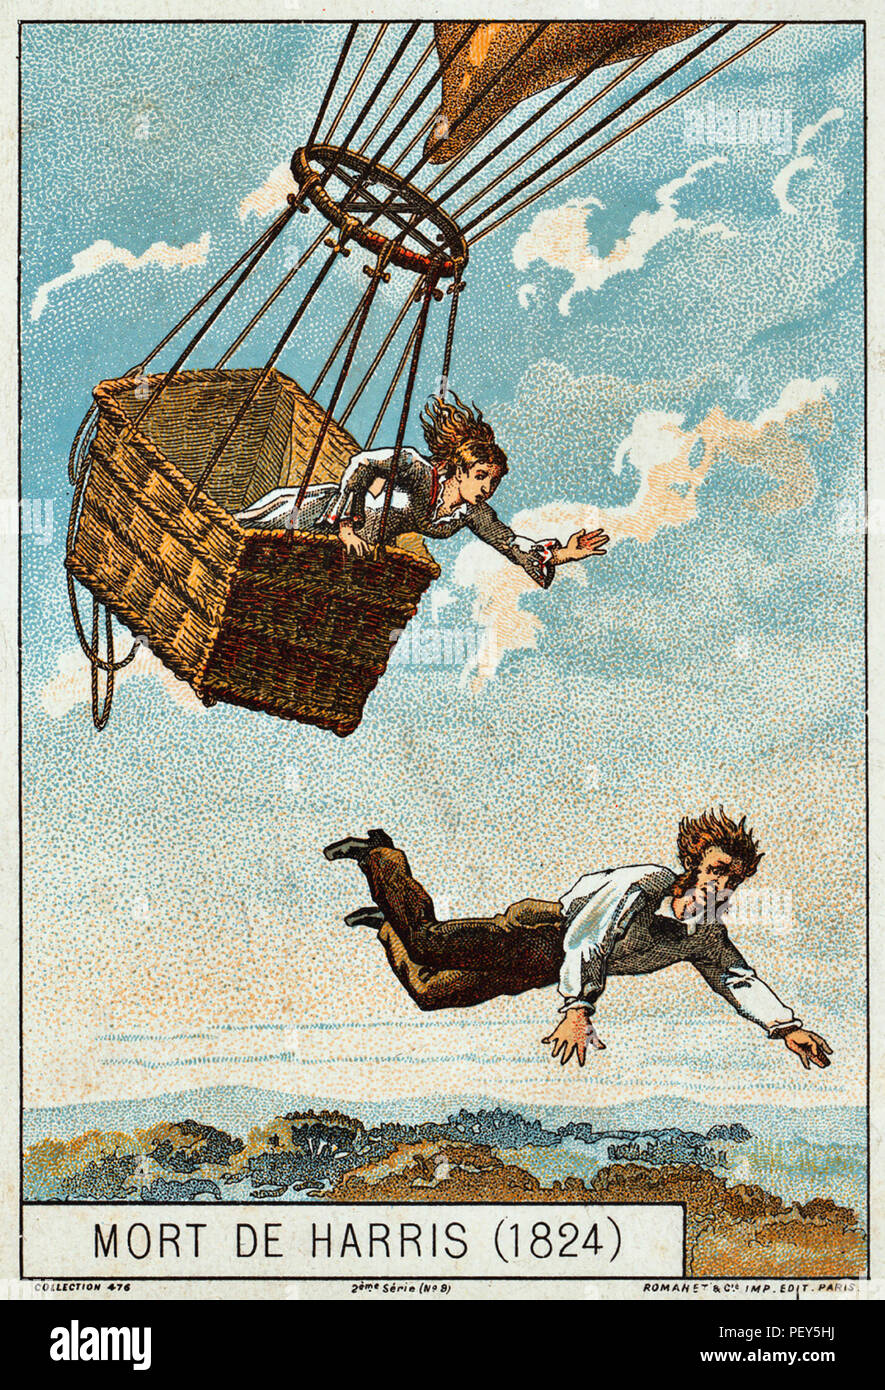 THOMAS HARRIS (?-1824) English balloonist dies while flying the balloon Royal George 25 May 1824 from Vauxhall,London. In fact he was killed in the crash landing accompanied by Sophia Stocks who survived. Part of a French collecting card series published 1890-1900 - Stock Image